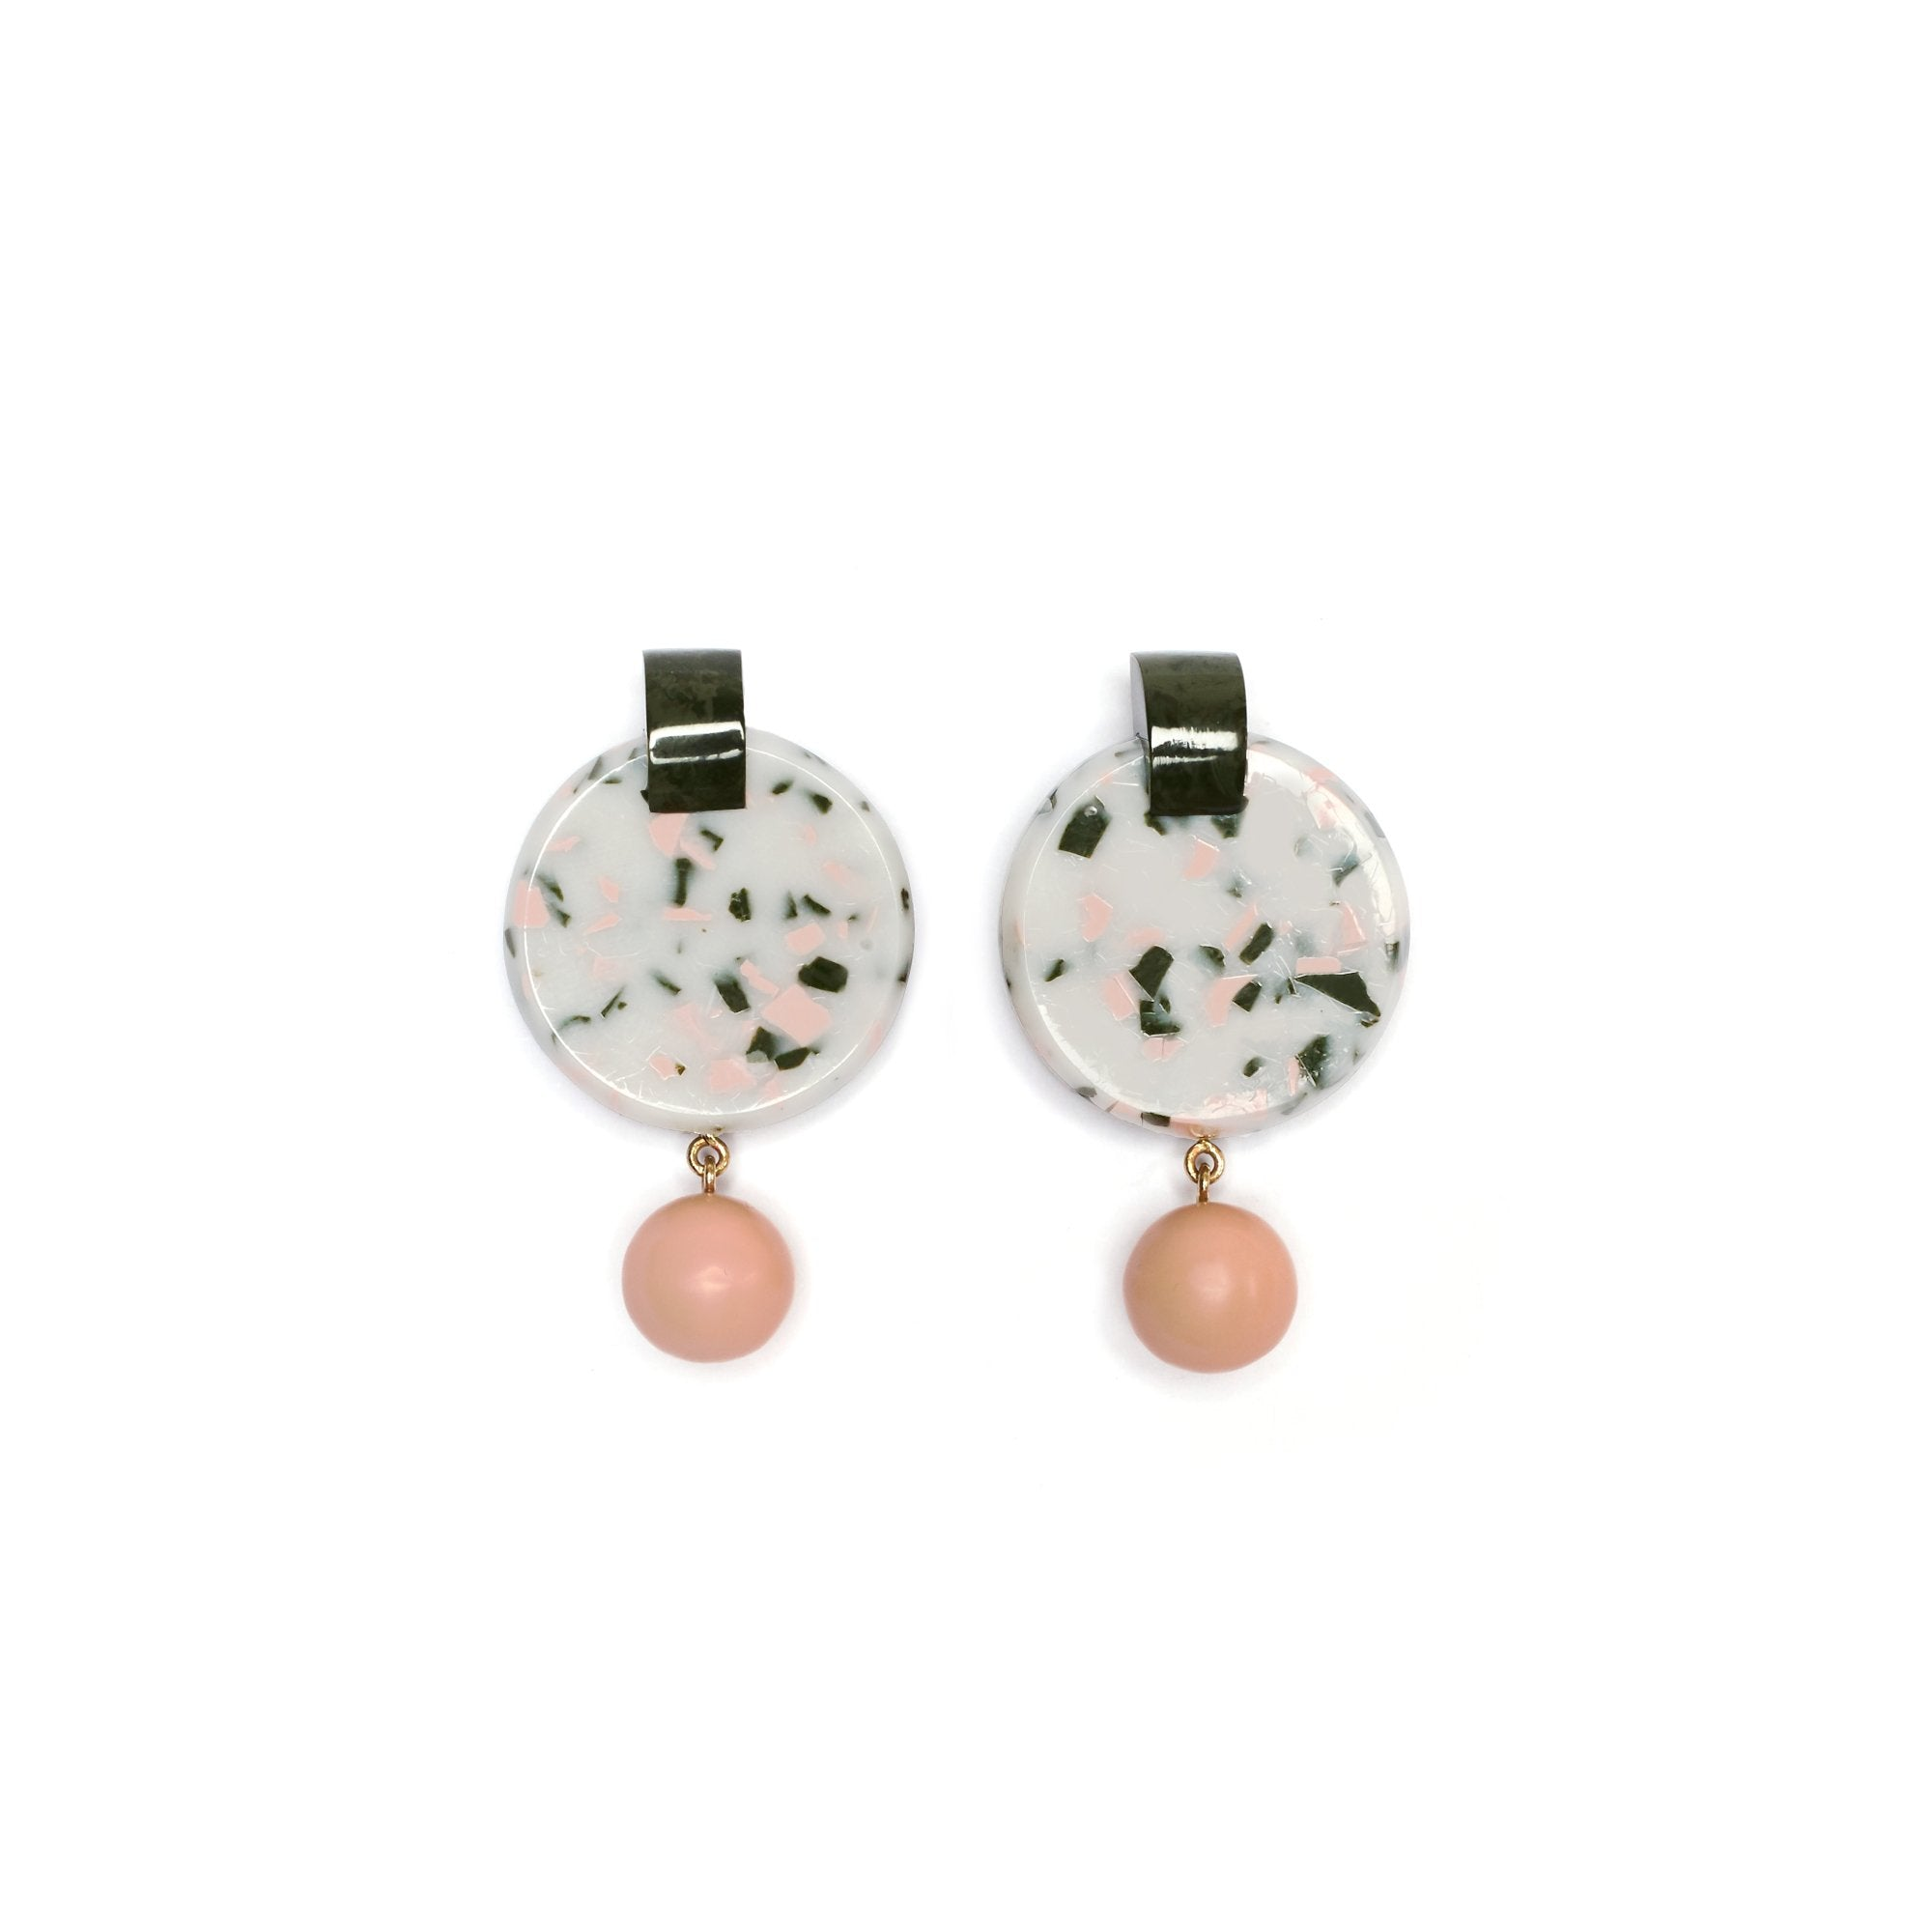 OLYMPUS EARRINGS - PUDDING STONE